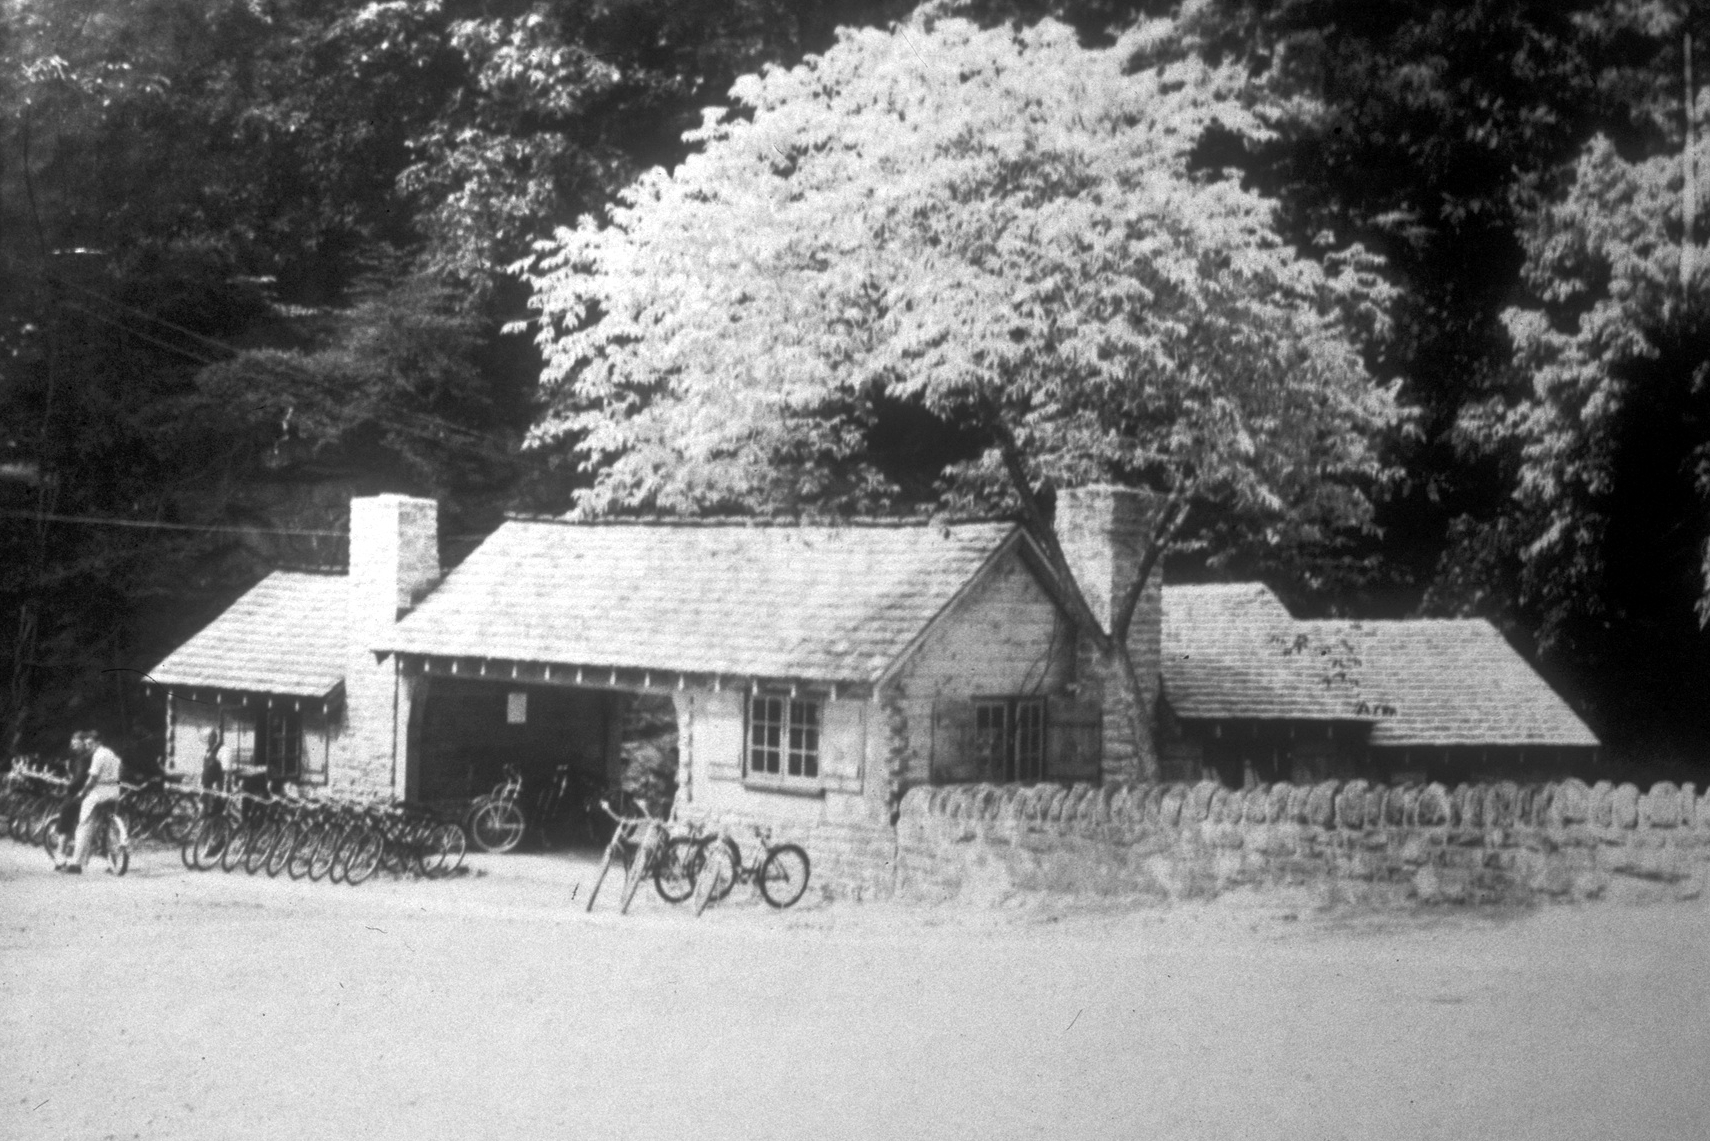 """Figure 4. The Lincoln Drive Shelter (""""The New Bicycle Concession Building""""  Evening Bulletin , 25 June 1940. Circulating collection, Wissahickon Valley, Free Library Prints and Pictures Room, Philadelphia, Pennsylvania. Reprinted with permission from Urban Archives, Philadelphia, Pennsylvania)."""